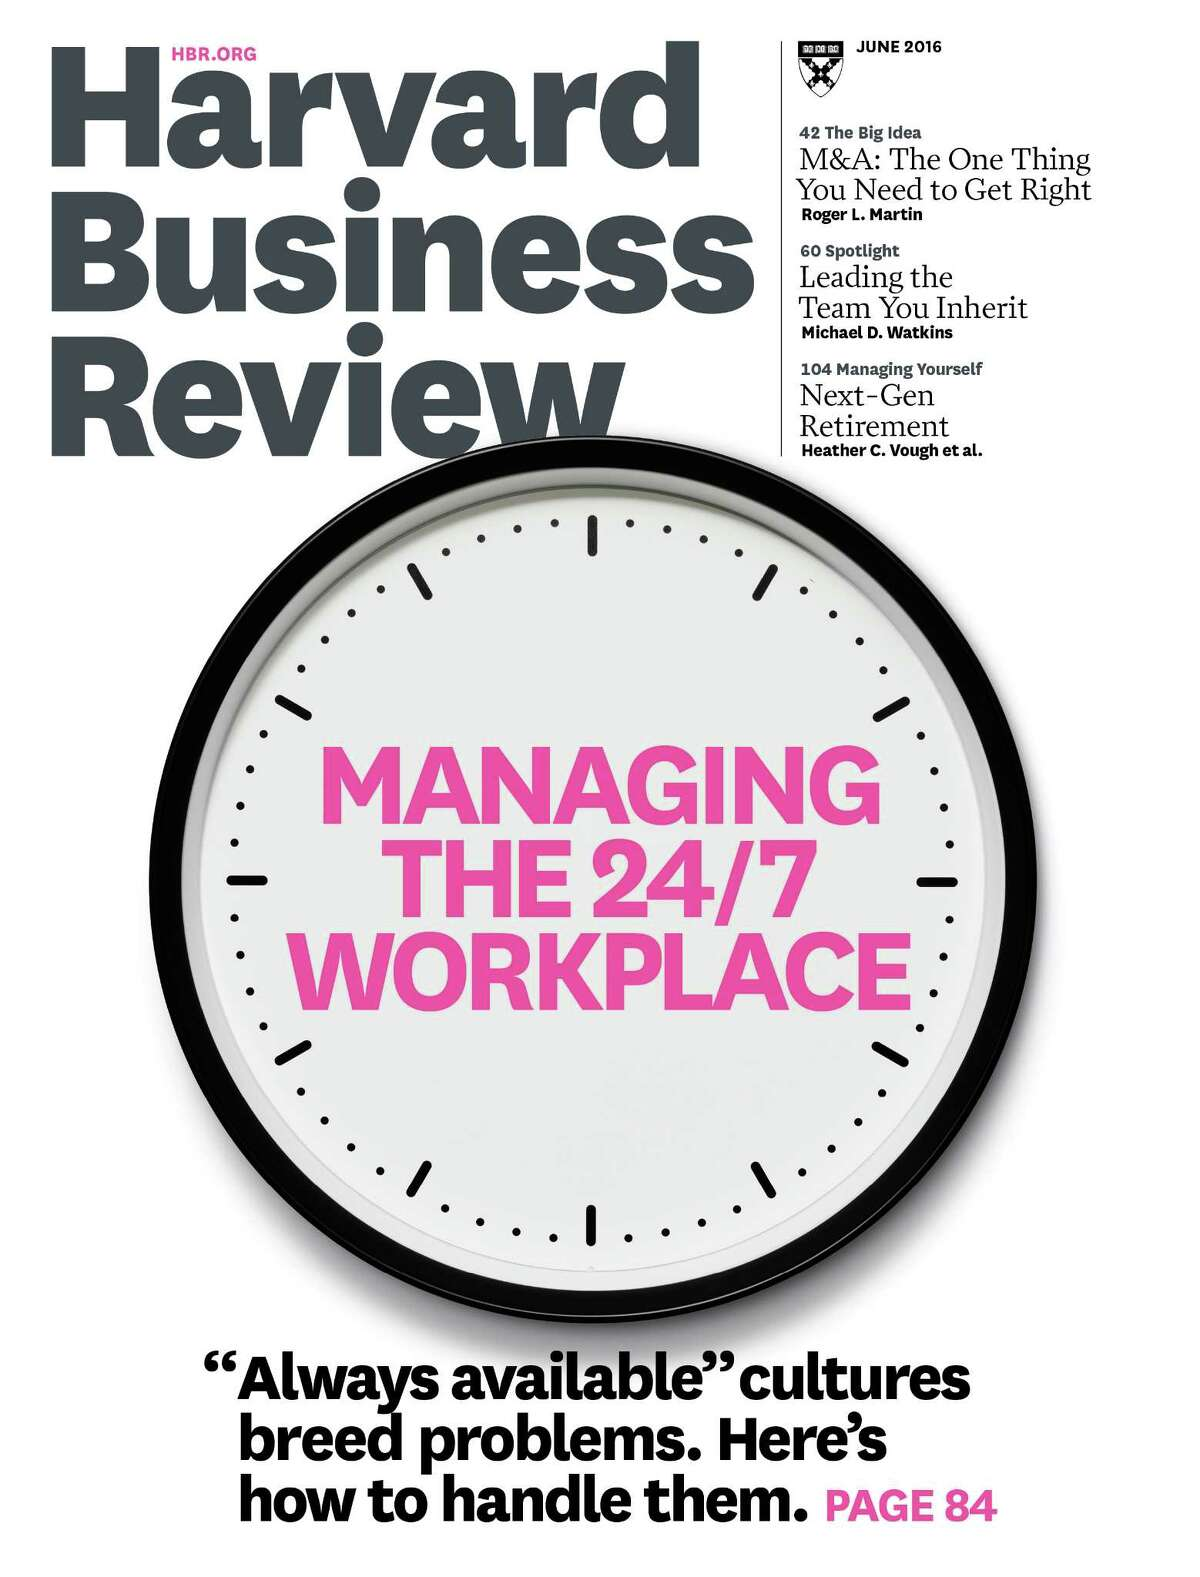 Blogs and articles at Harvard Business Review